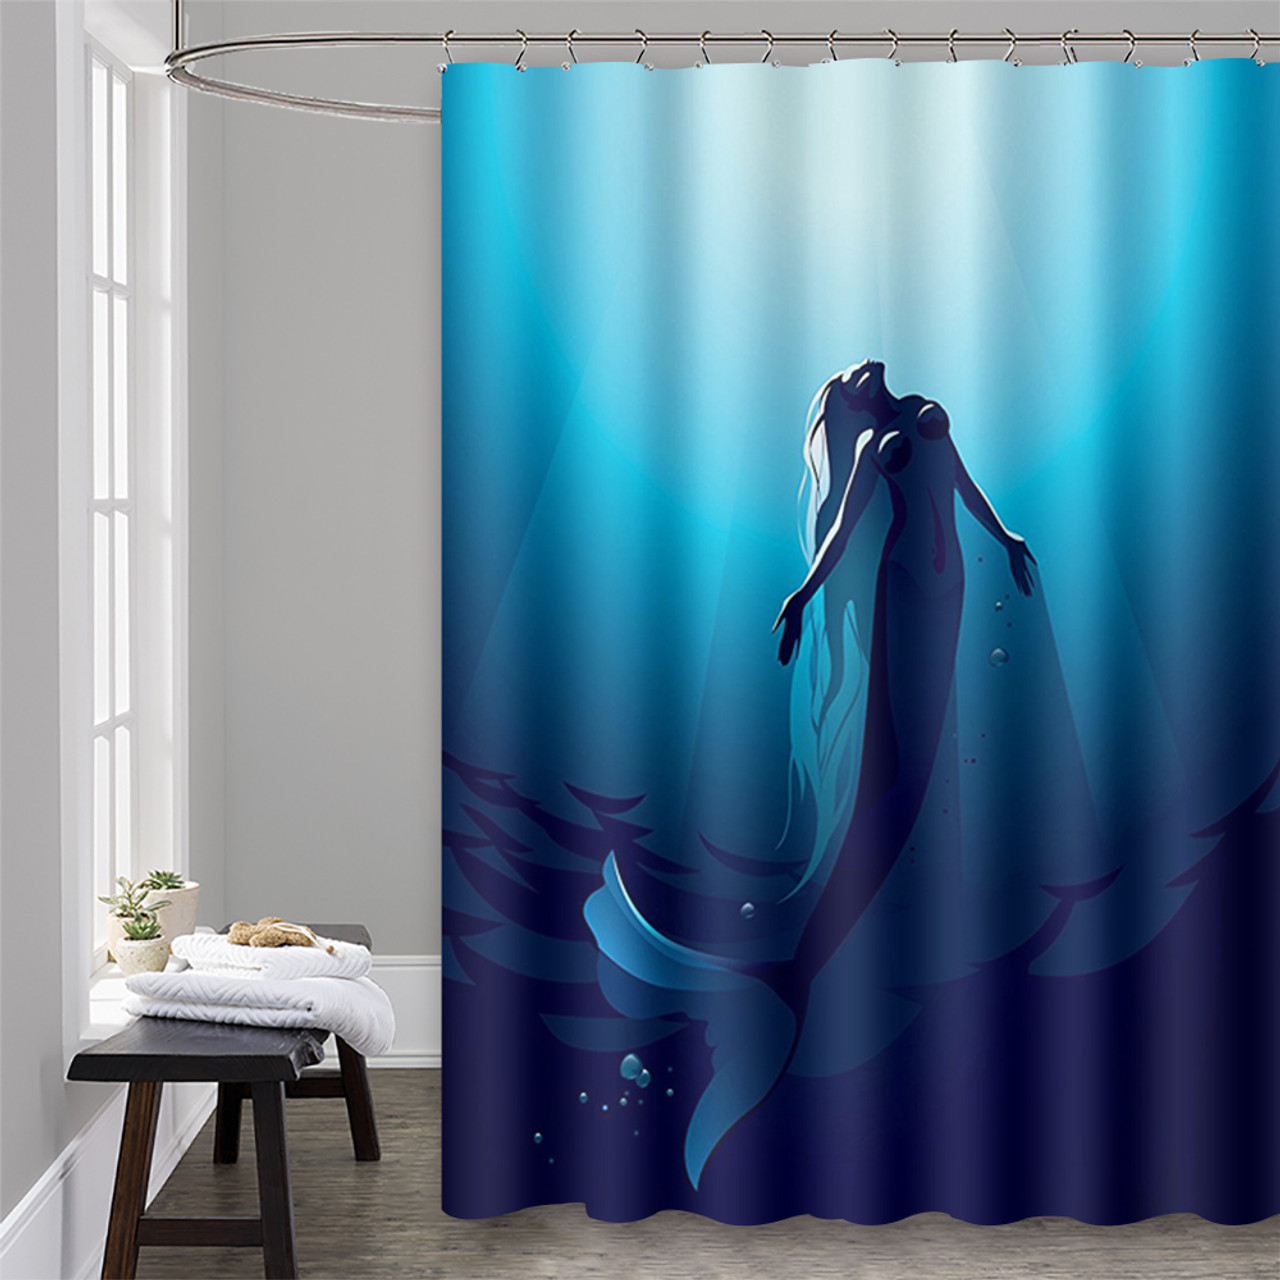 Shower Curtain With Hooks Mermaids 72 X 72 0035